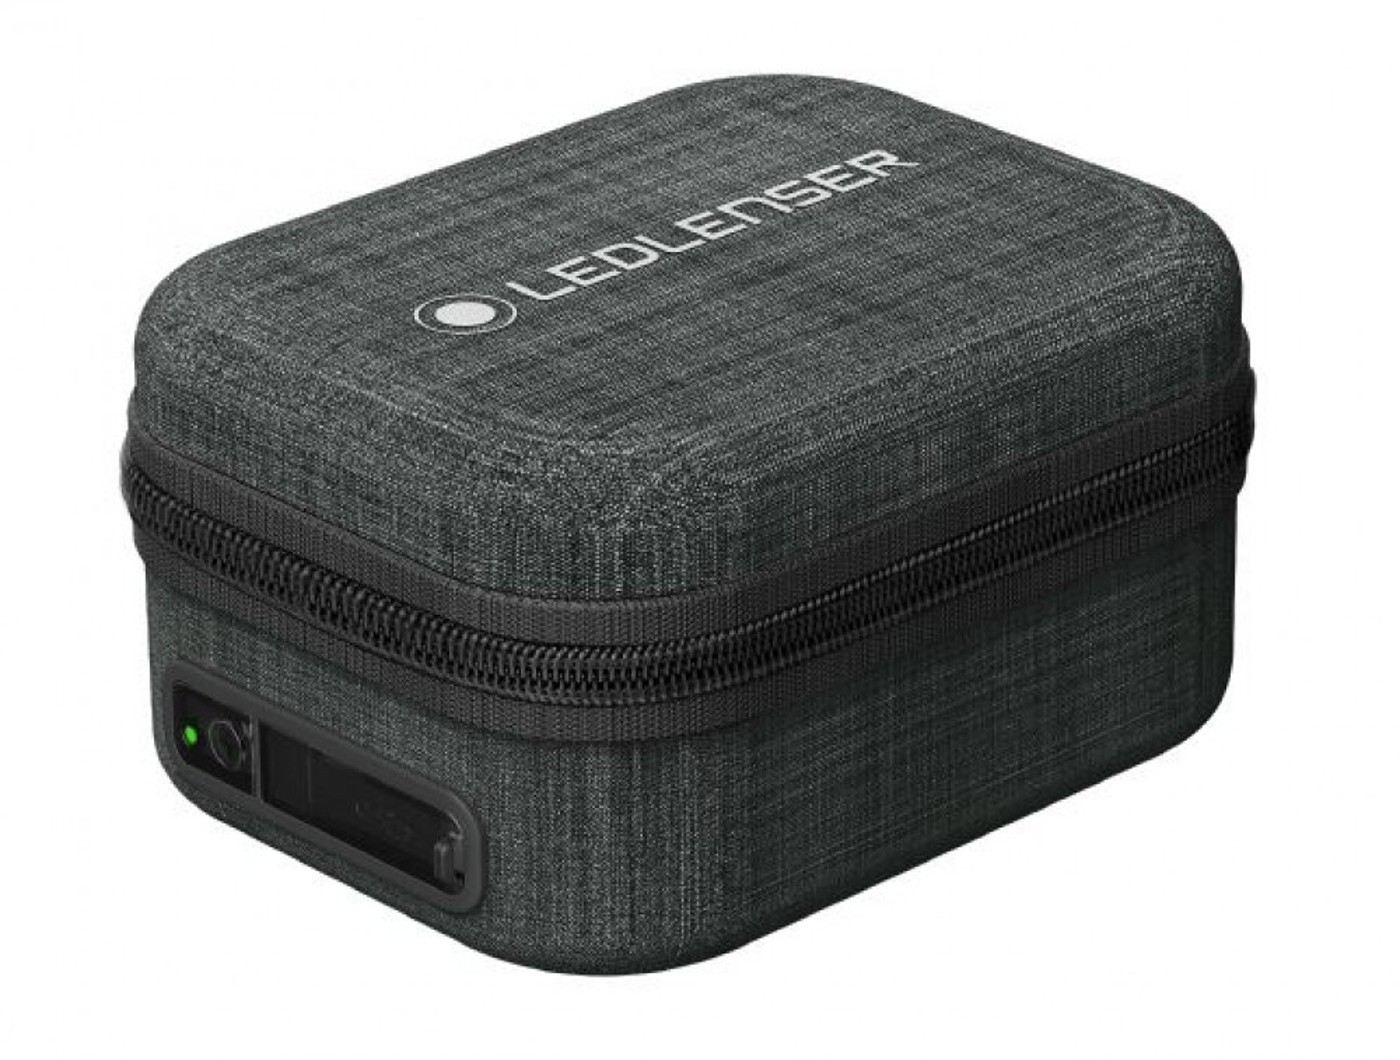 LED LENSER Powercase Ledlenser